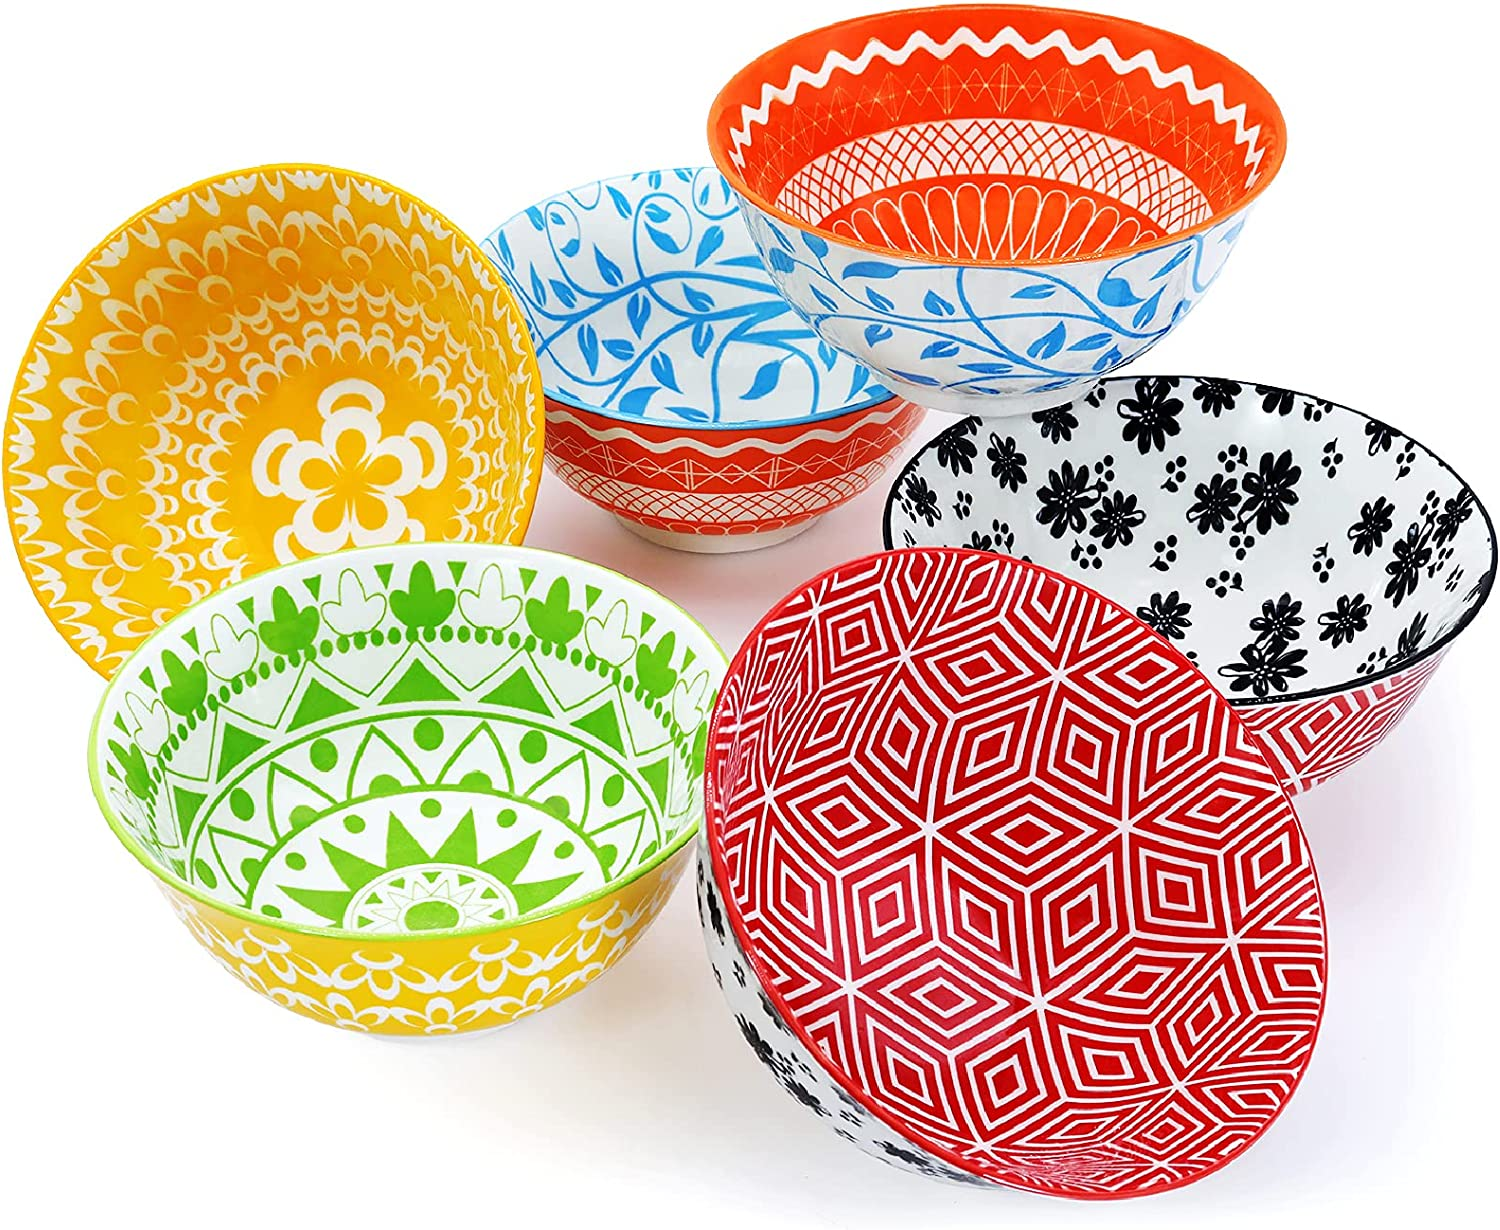 Porcelain Free Shipping New Cereal Bowls Recommendation Set of 6 Colorful Vivimee 24 Ounce Soup